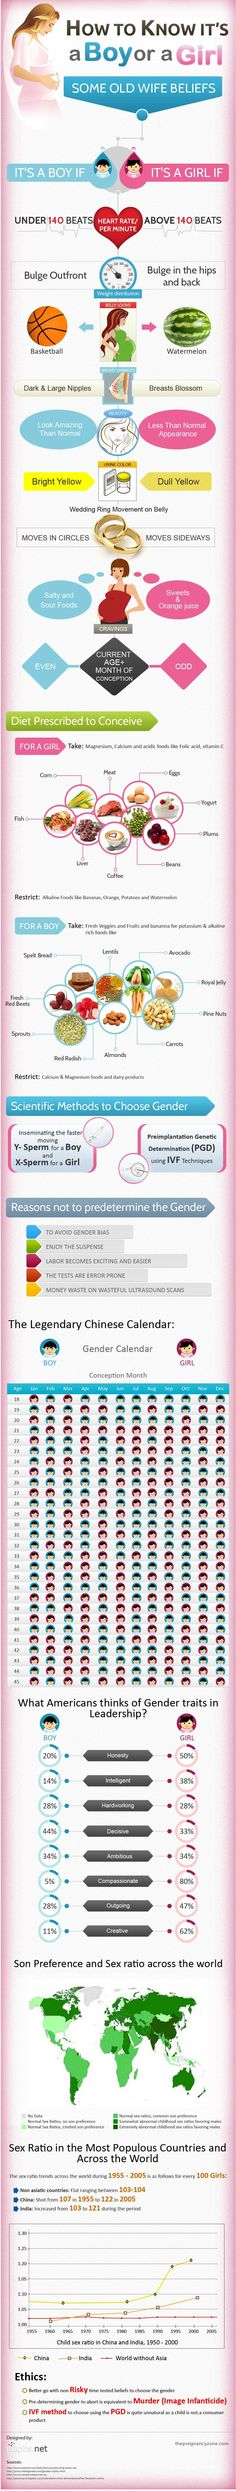 Here's a gender prediction infographic that will help you how to know if it's a boy or girl in your pregnant belly. Lots of old wives tales predictions.